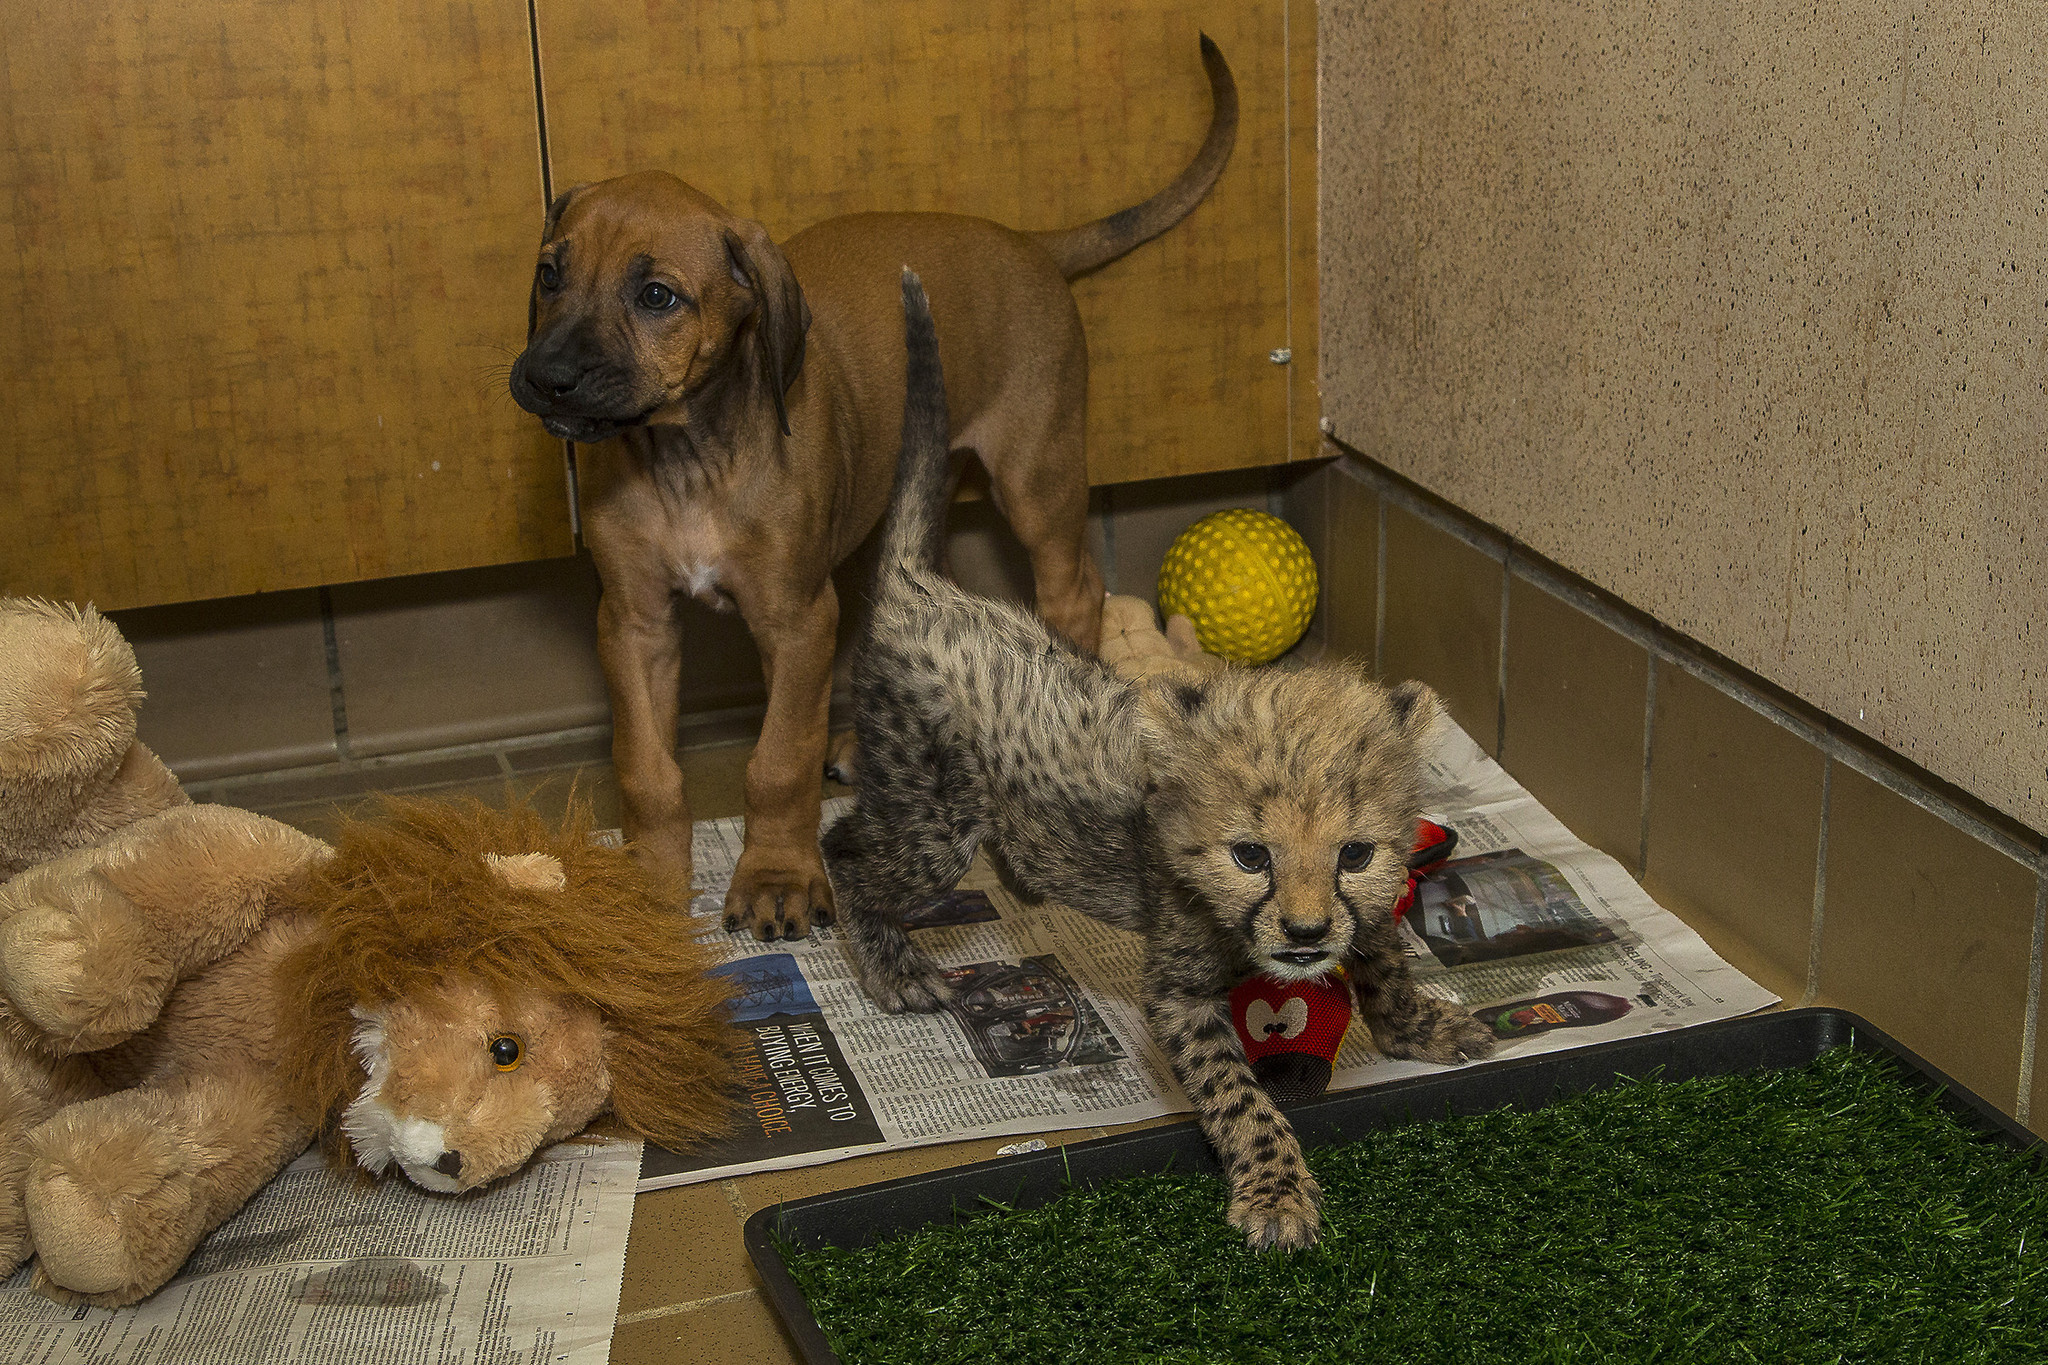 Cheetah Dog Best Cheetah Image And Photo HD - Cheetahs can be so shy that zoos give them emotional support dogs